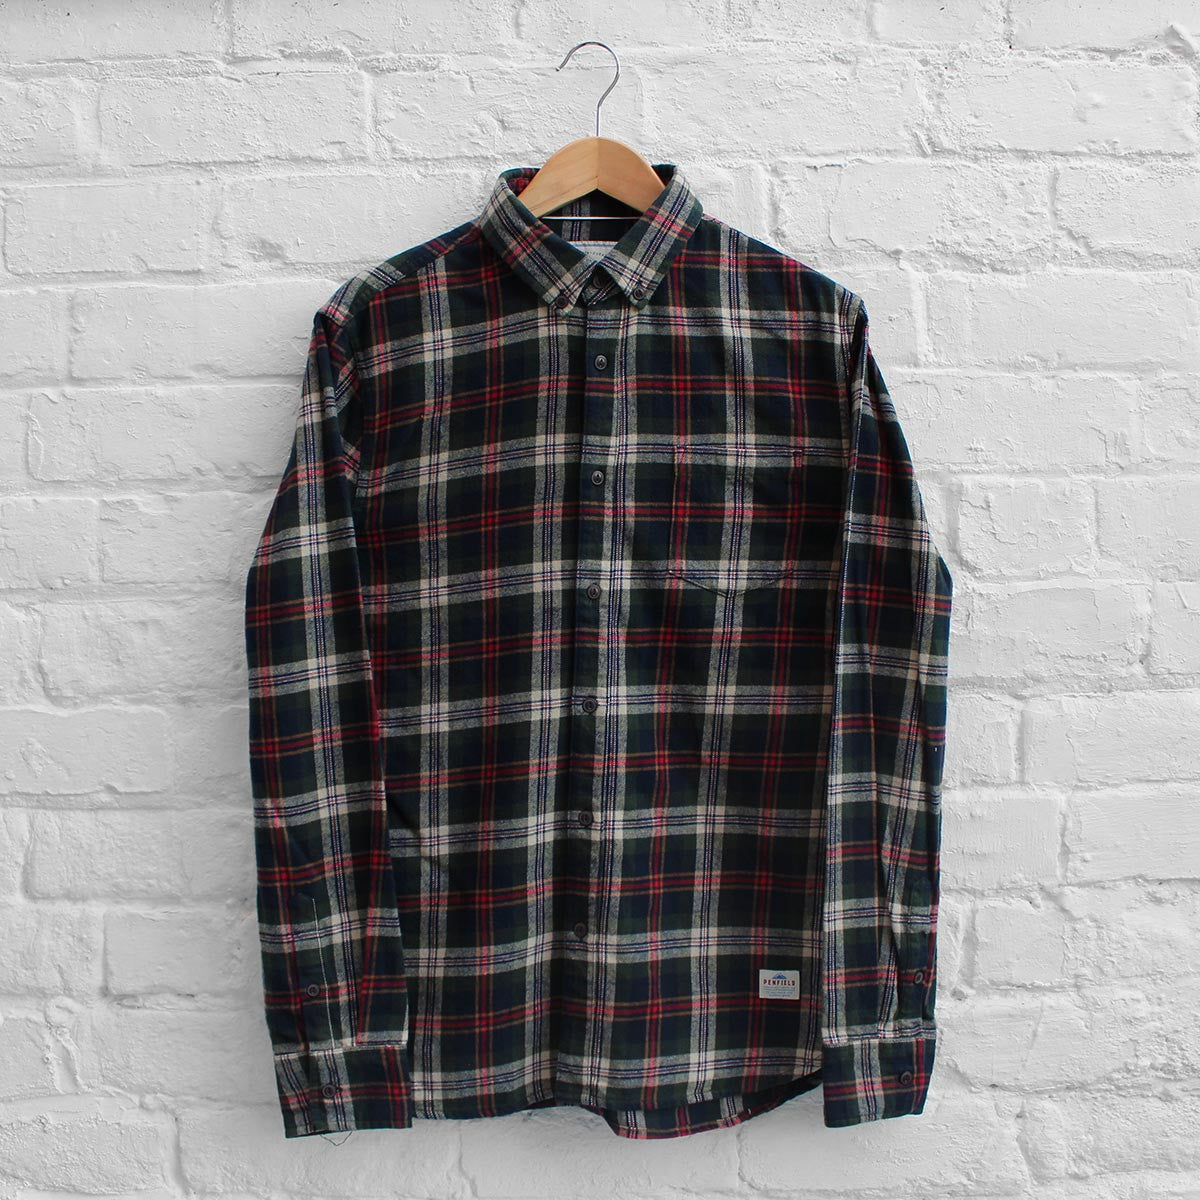 Penfield Harmon Shirt Grey